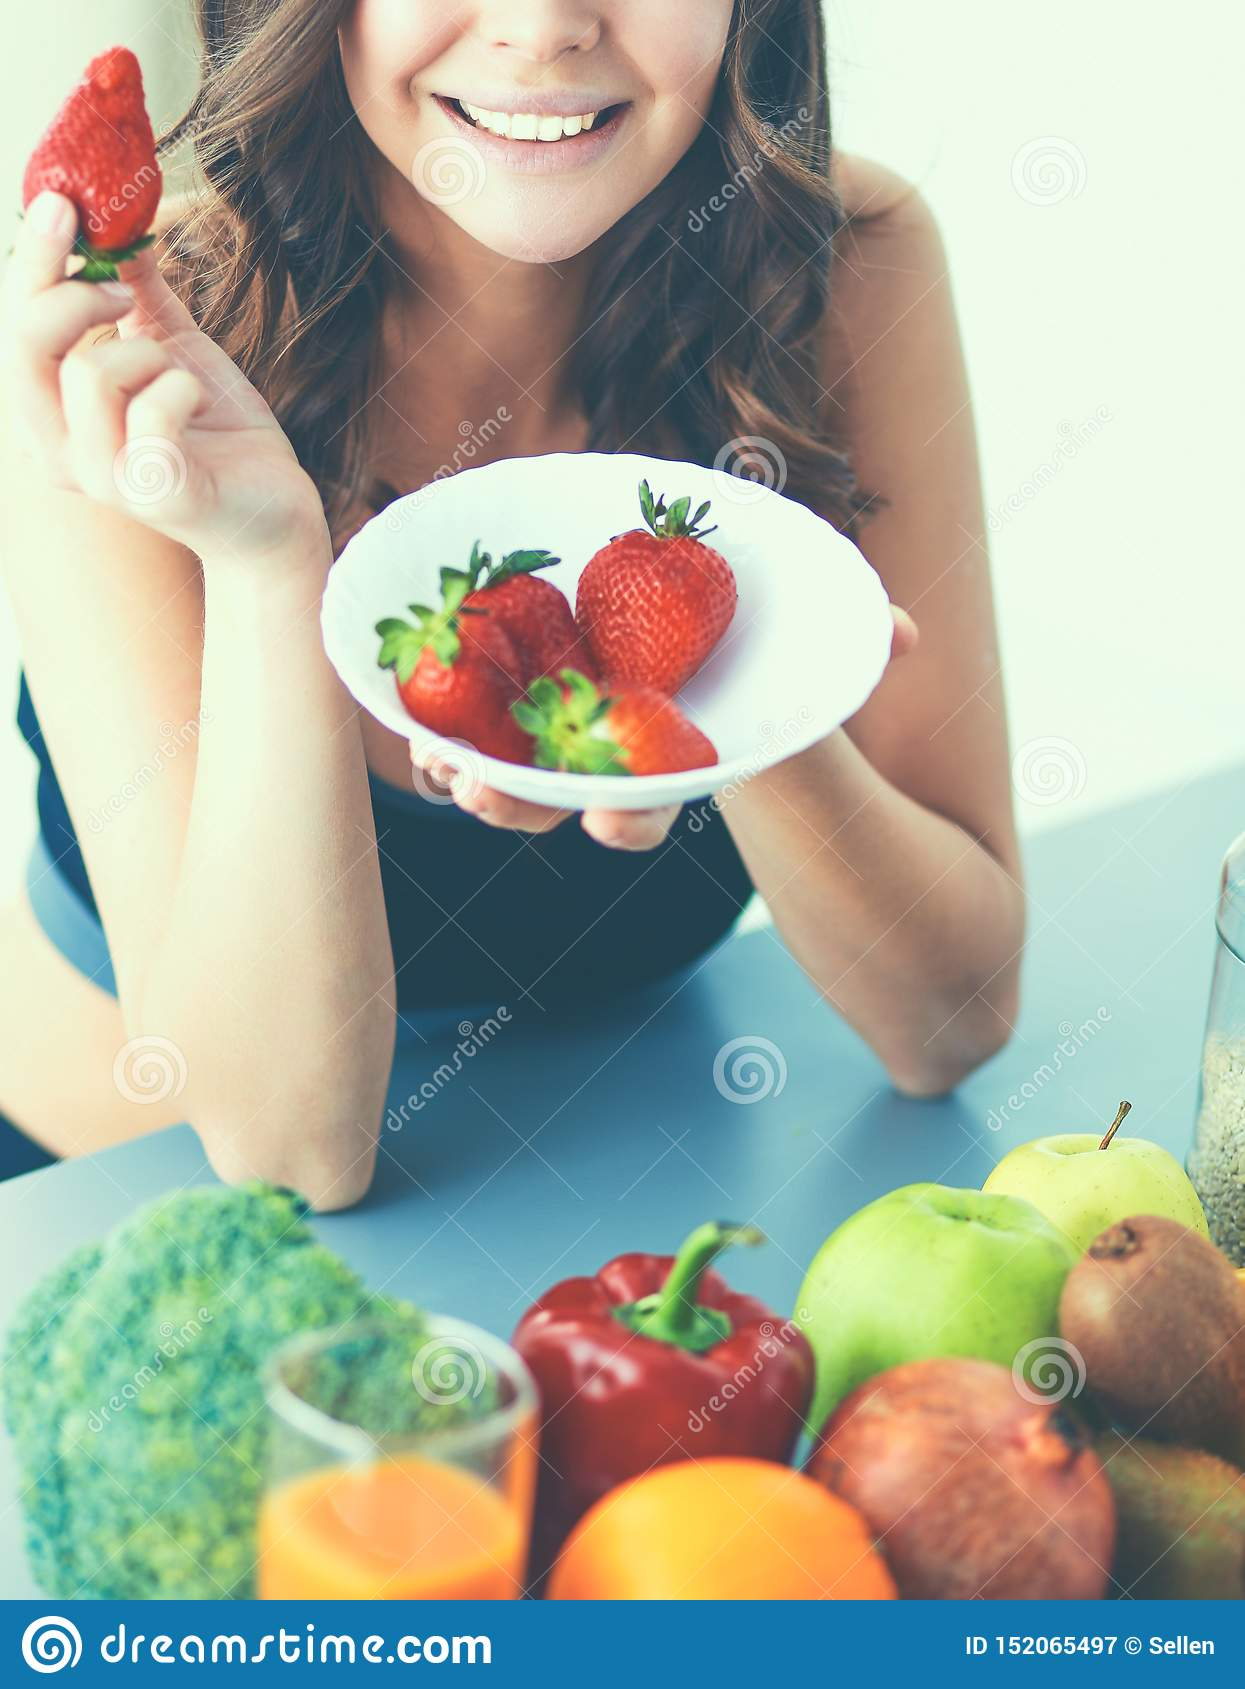 Smiling woman eating strawberry. Close up female face portrait